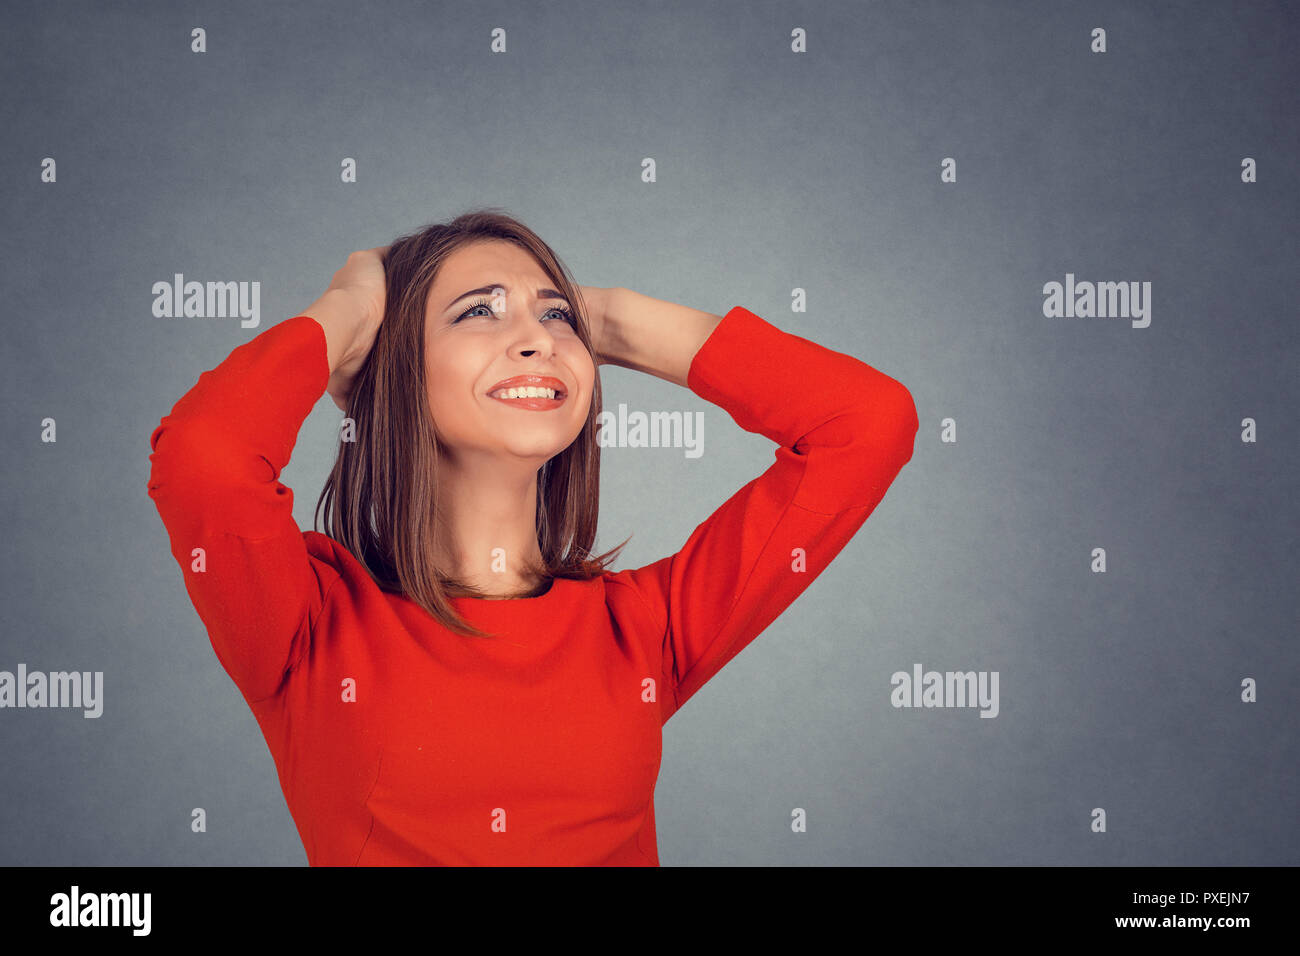 angry woman covering ears looking up stop loud noise - Stock Image